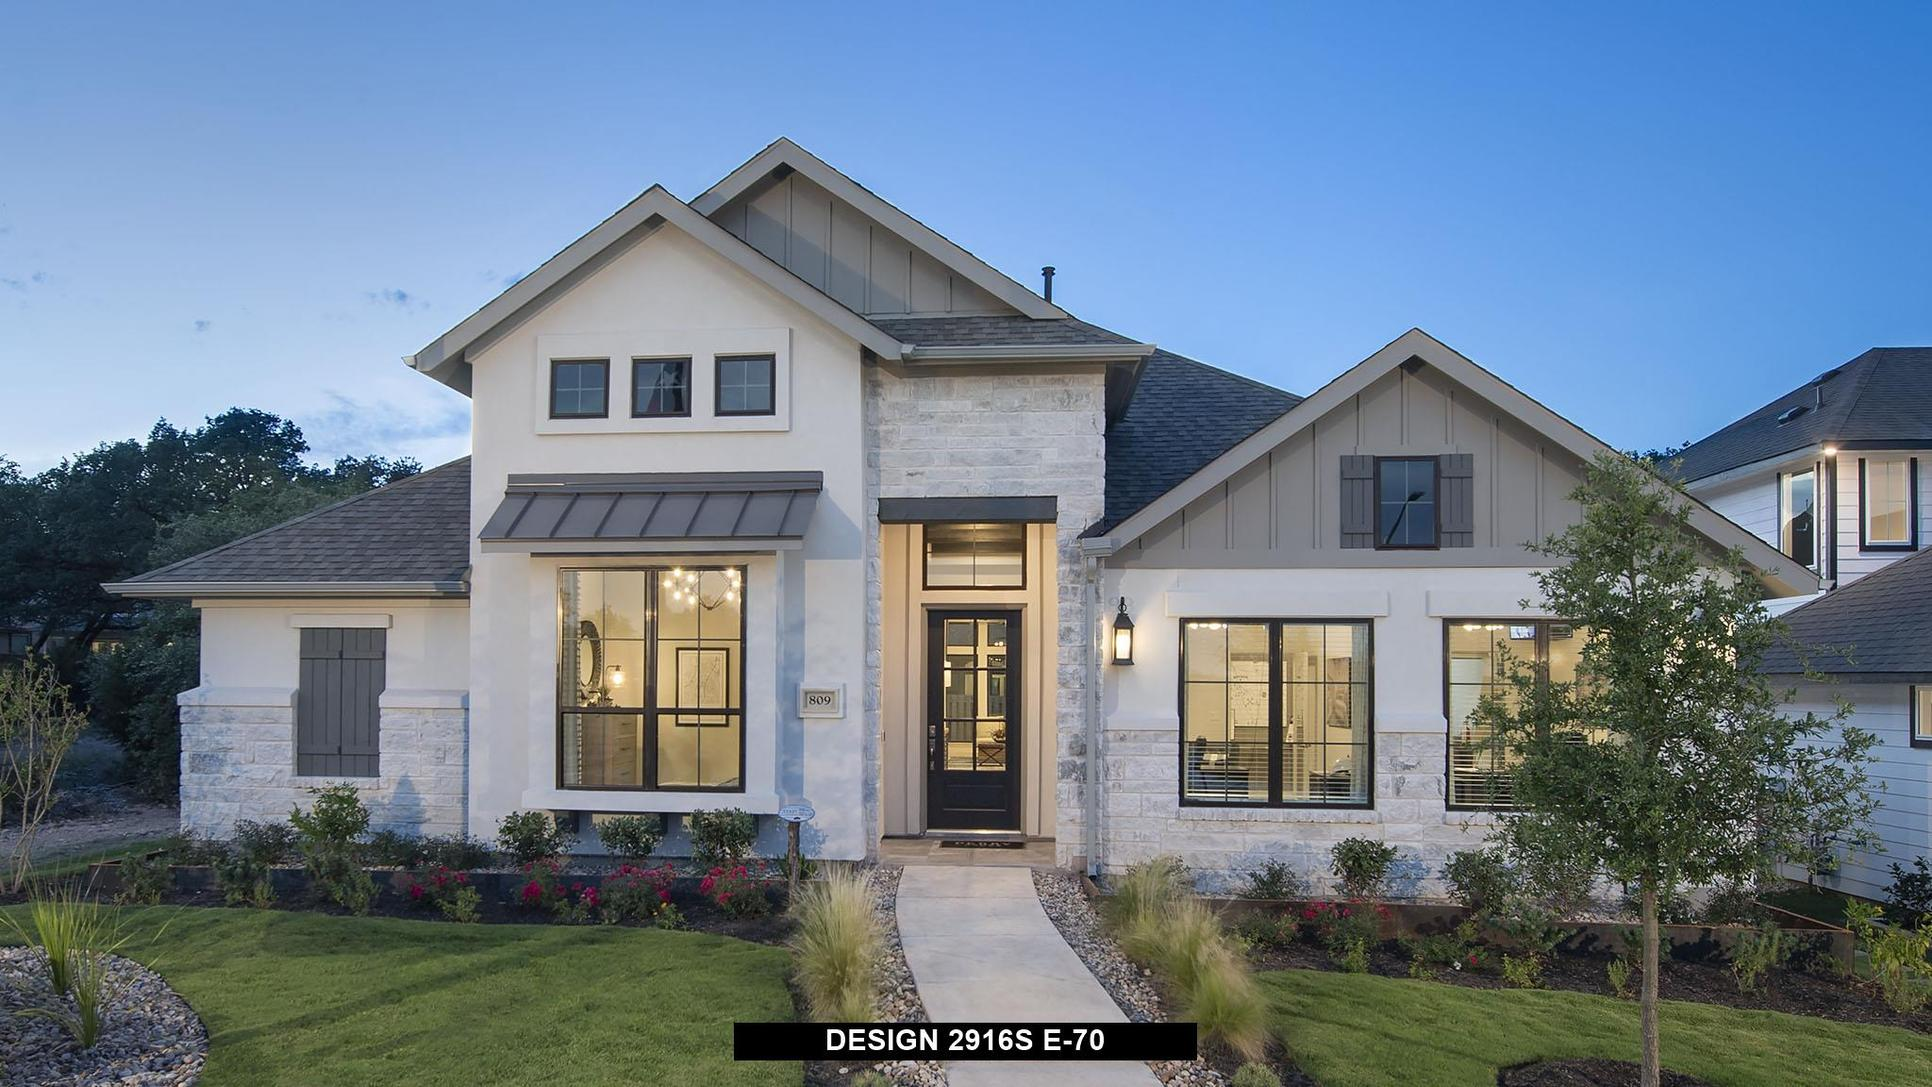 Plan 2916S:Representative photo.  Features and specifications may vary by community.